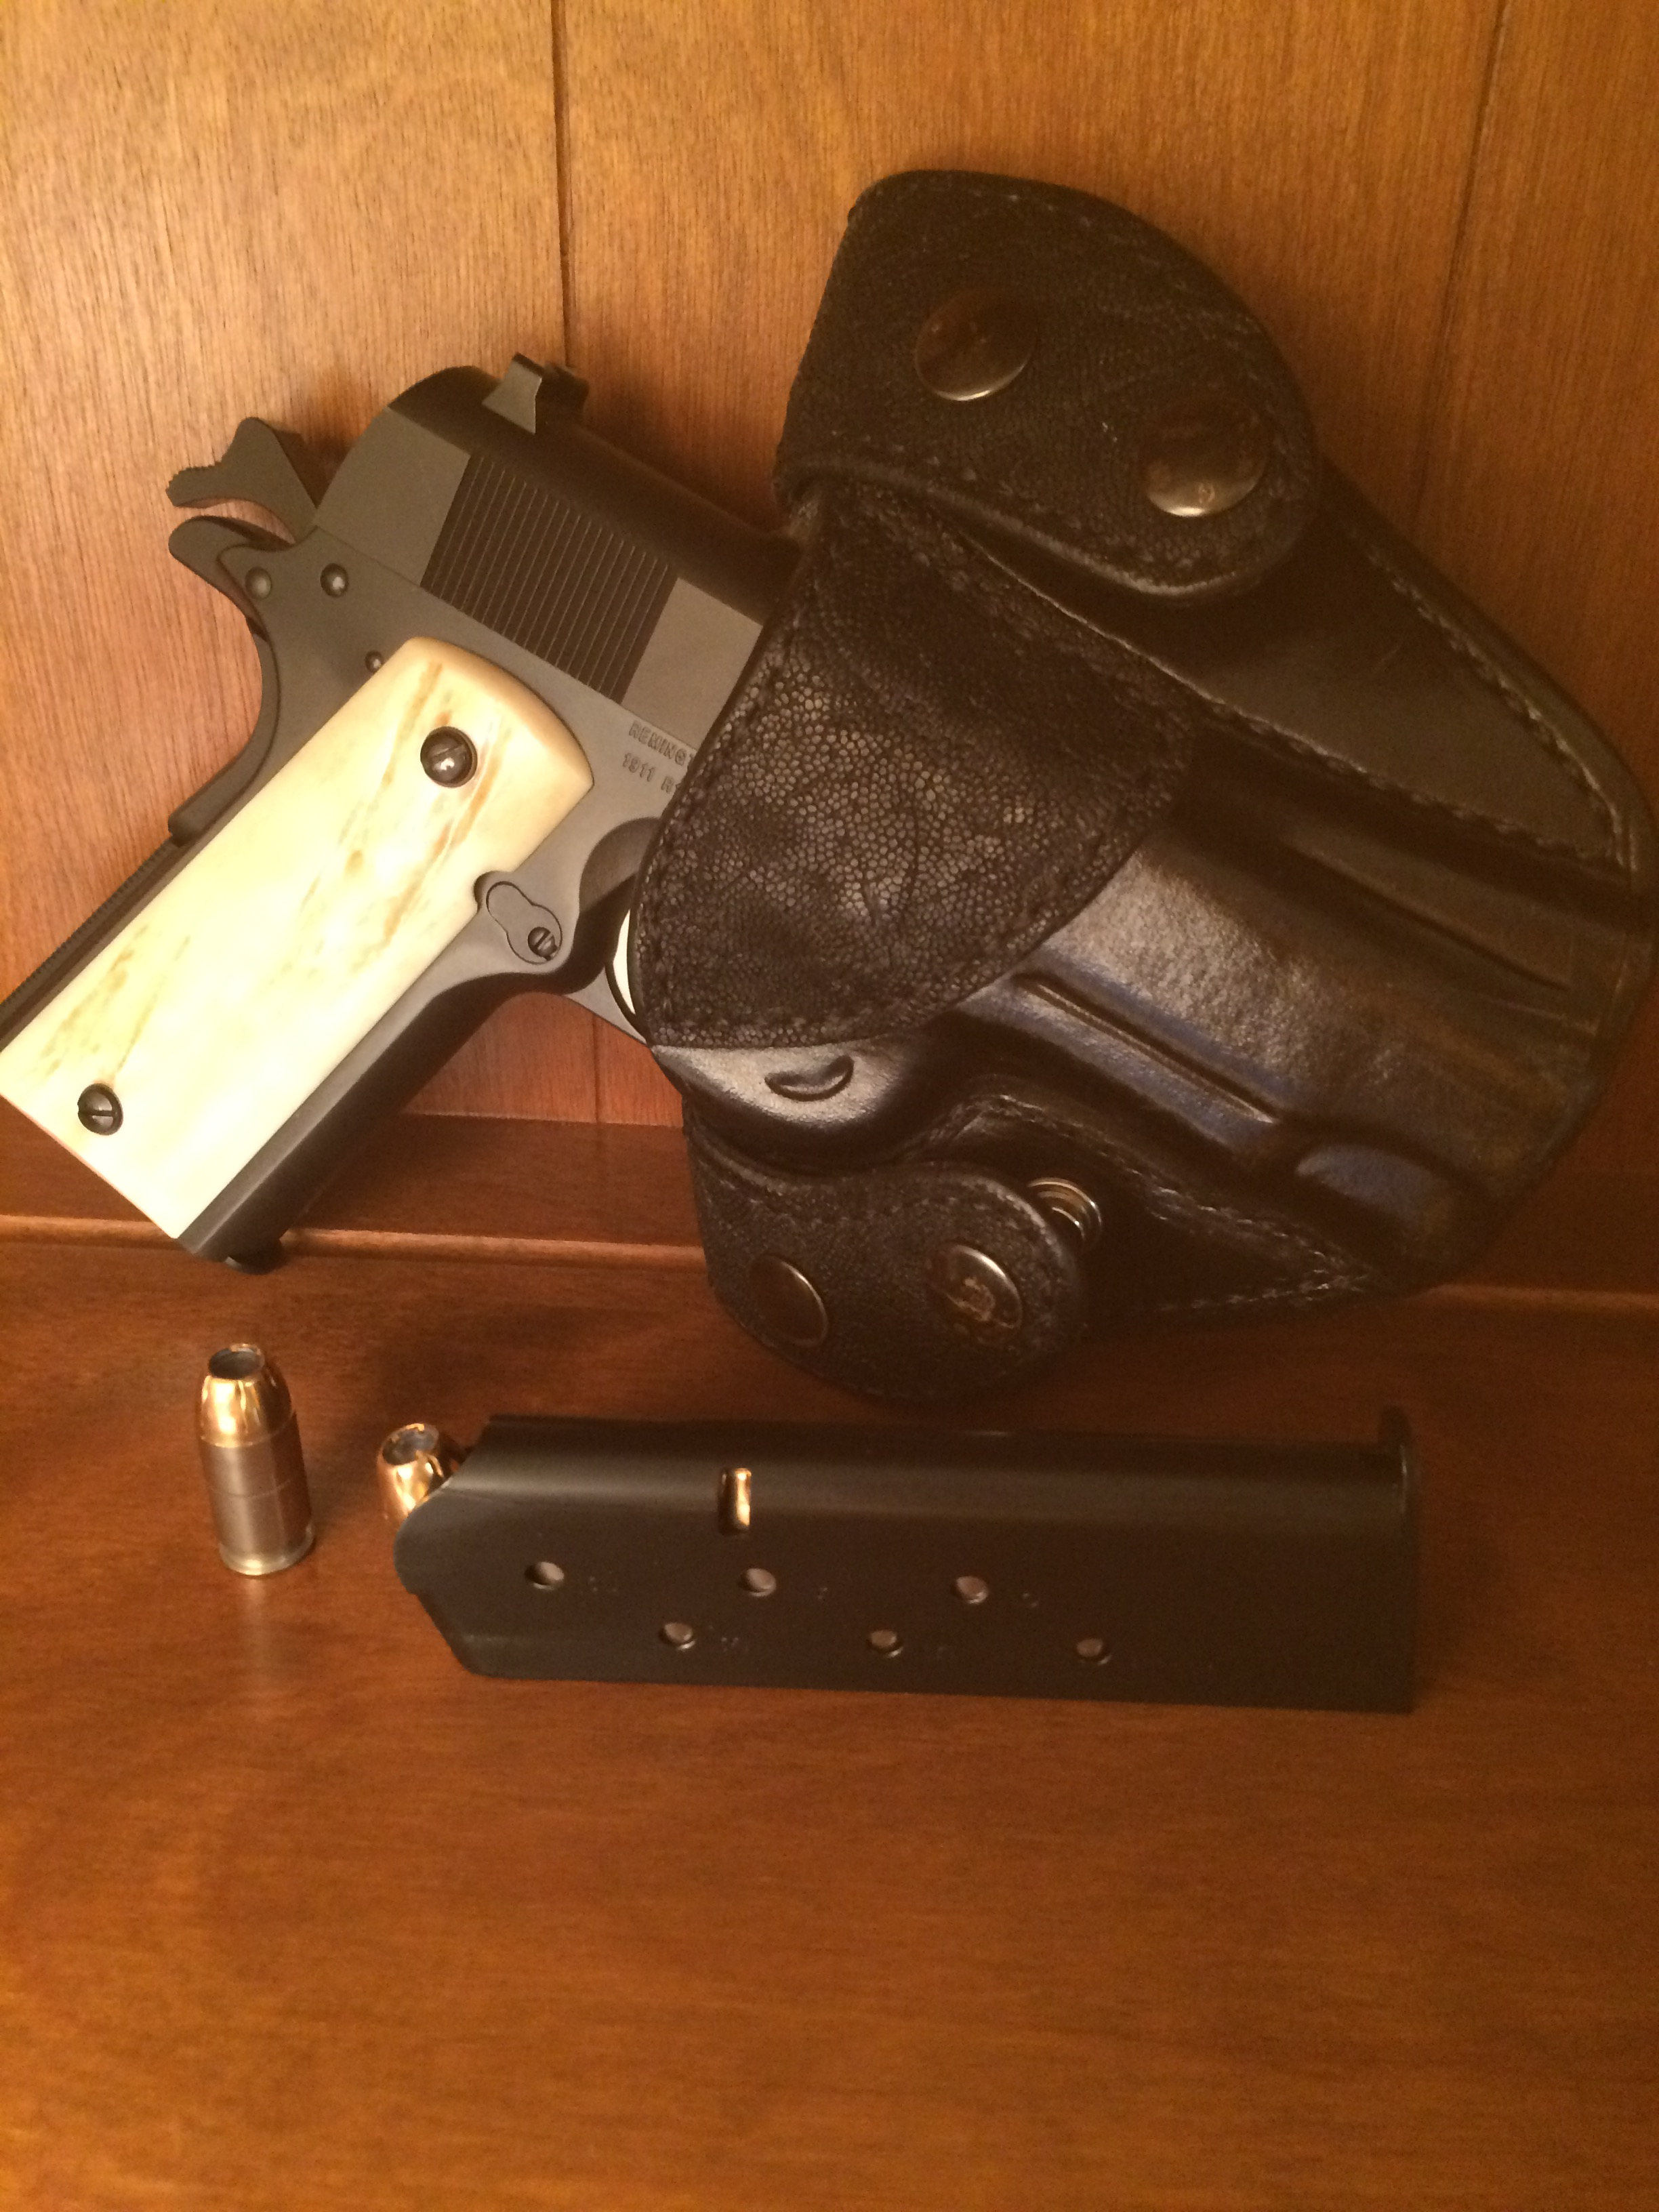 Looking for a REAL 1911....help me out DC 1911 Experts!-remington-r1-commander-axiom-3.jpg